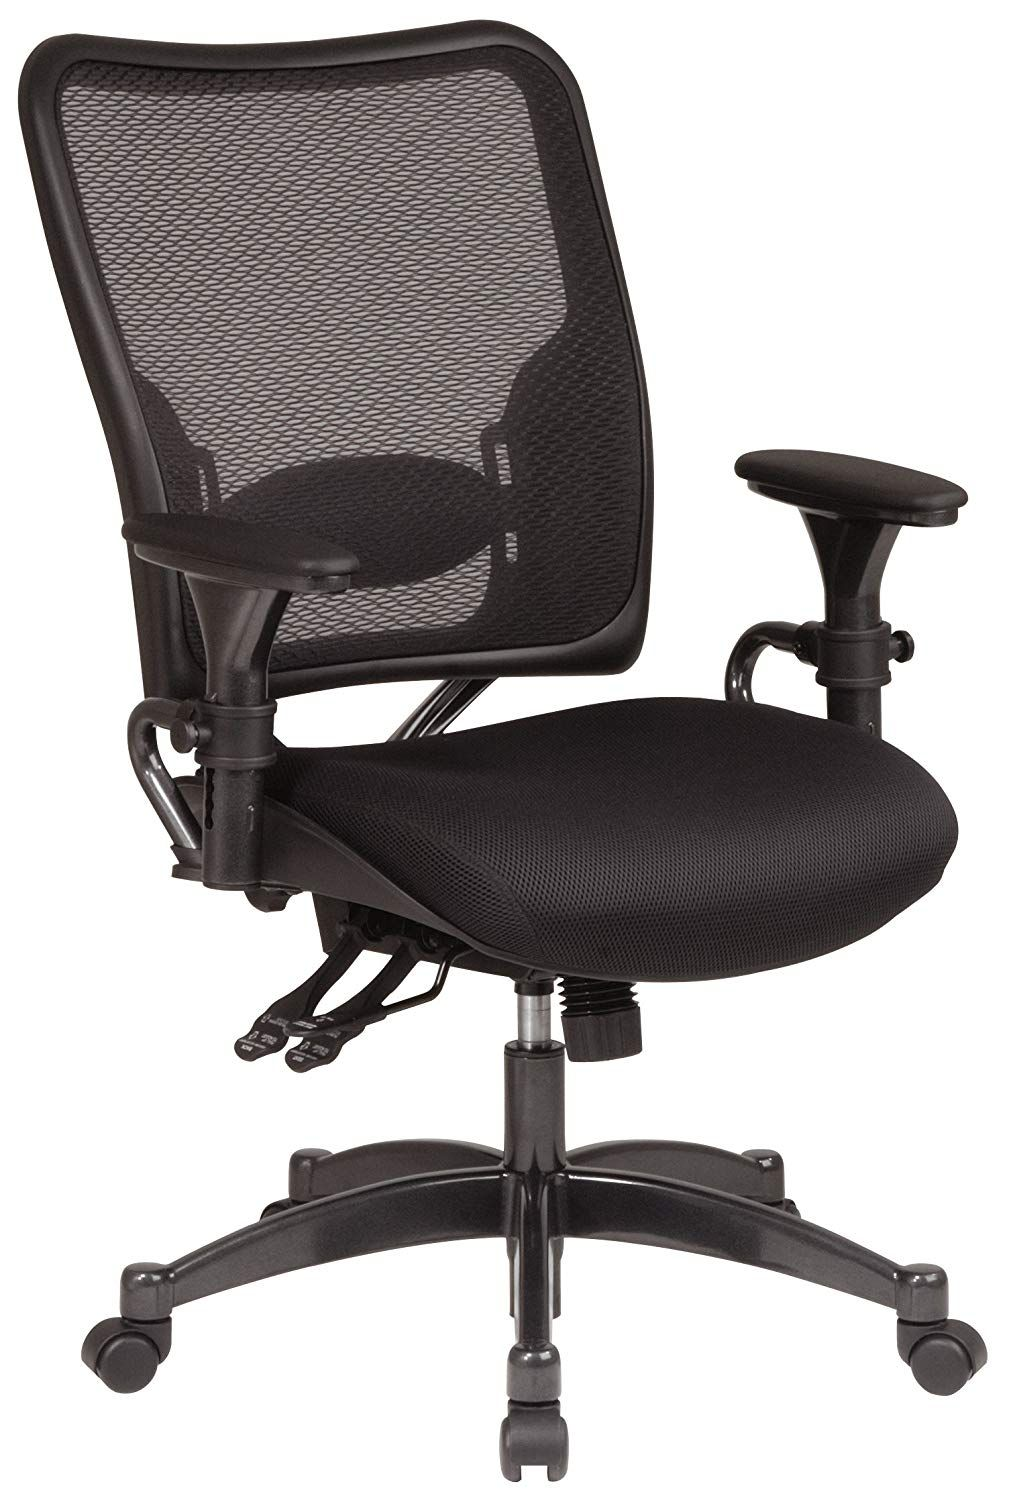 SPACE Seating Professional Dual Function Ergonomic AirGrid